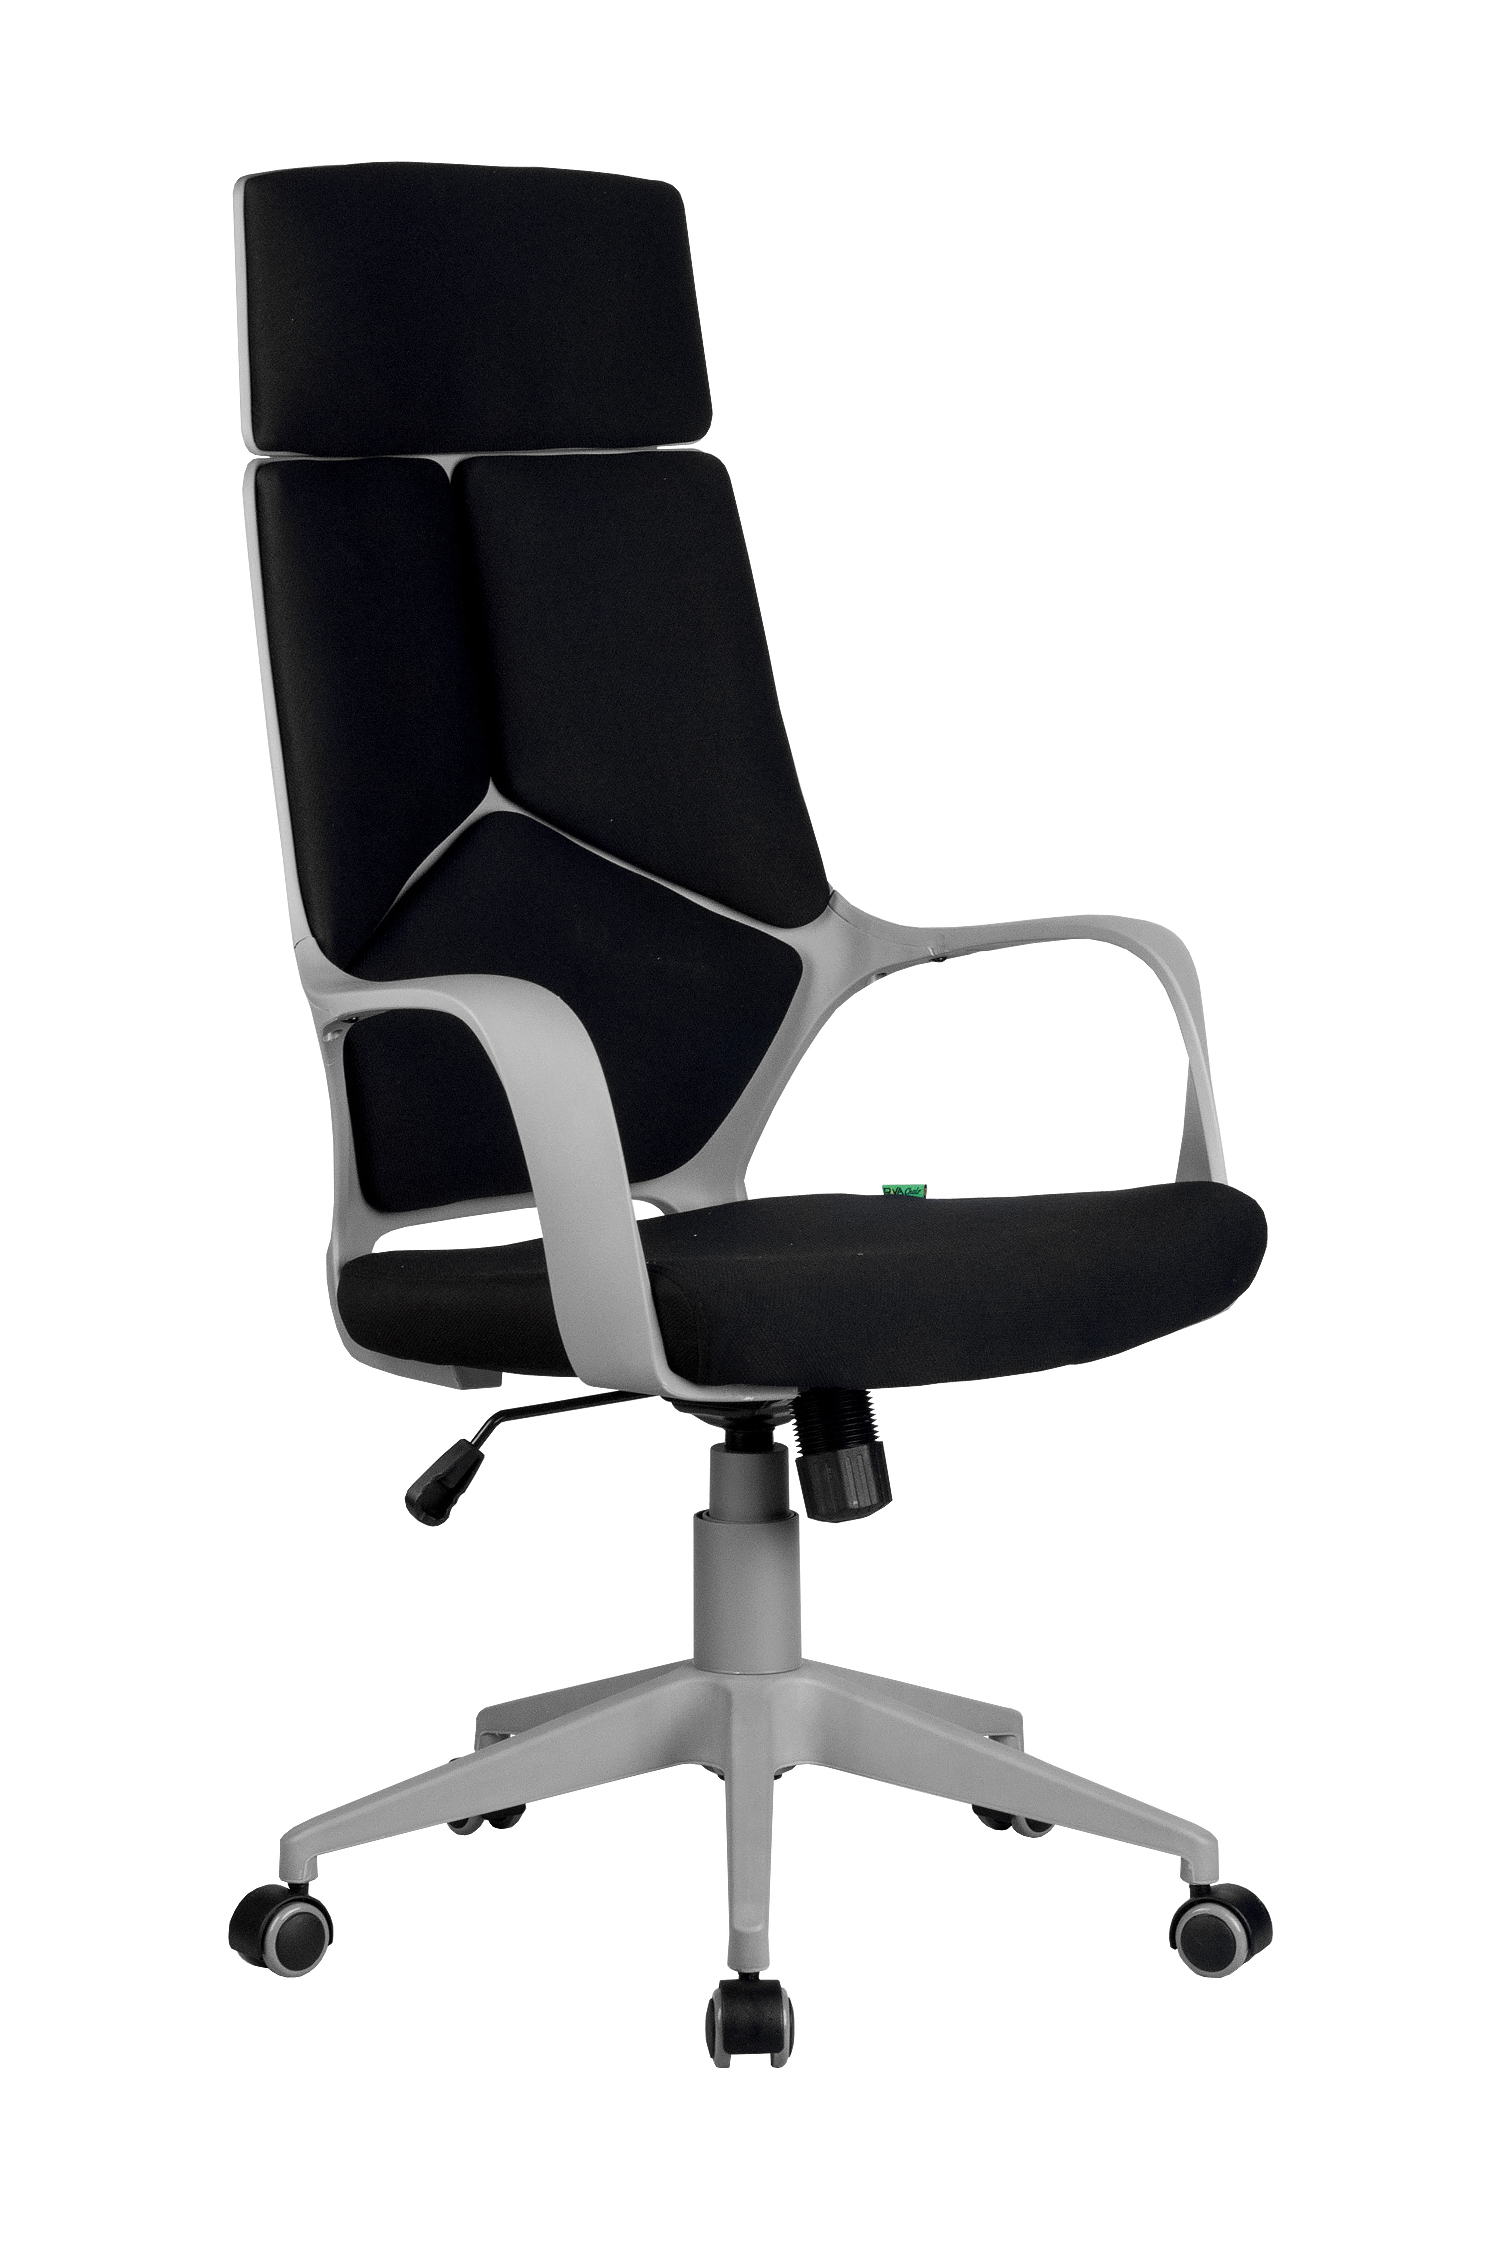 Кресло компьютерное Riva Chair 8989 (черный пластик) Черный цвет, ткань